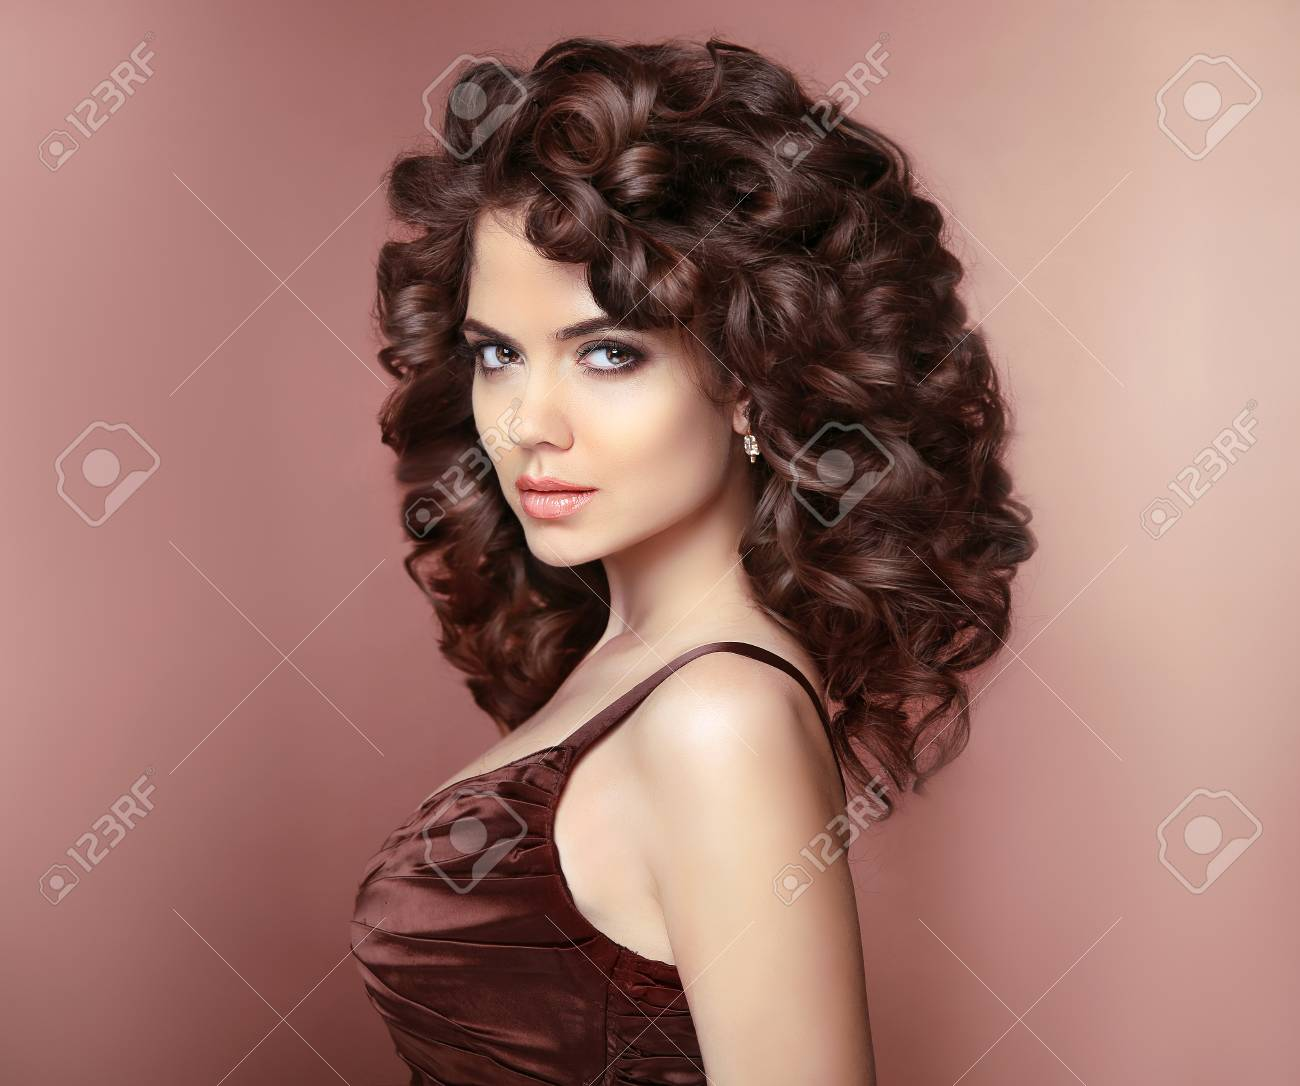 Healthy Hair Beautiful Young Smiling Woman With Long Curly Hairstyle